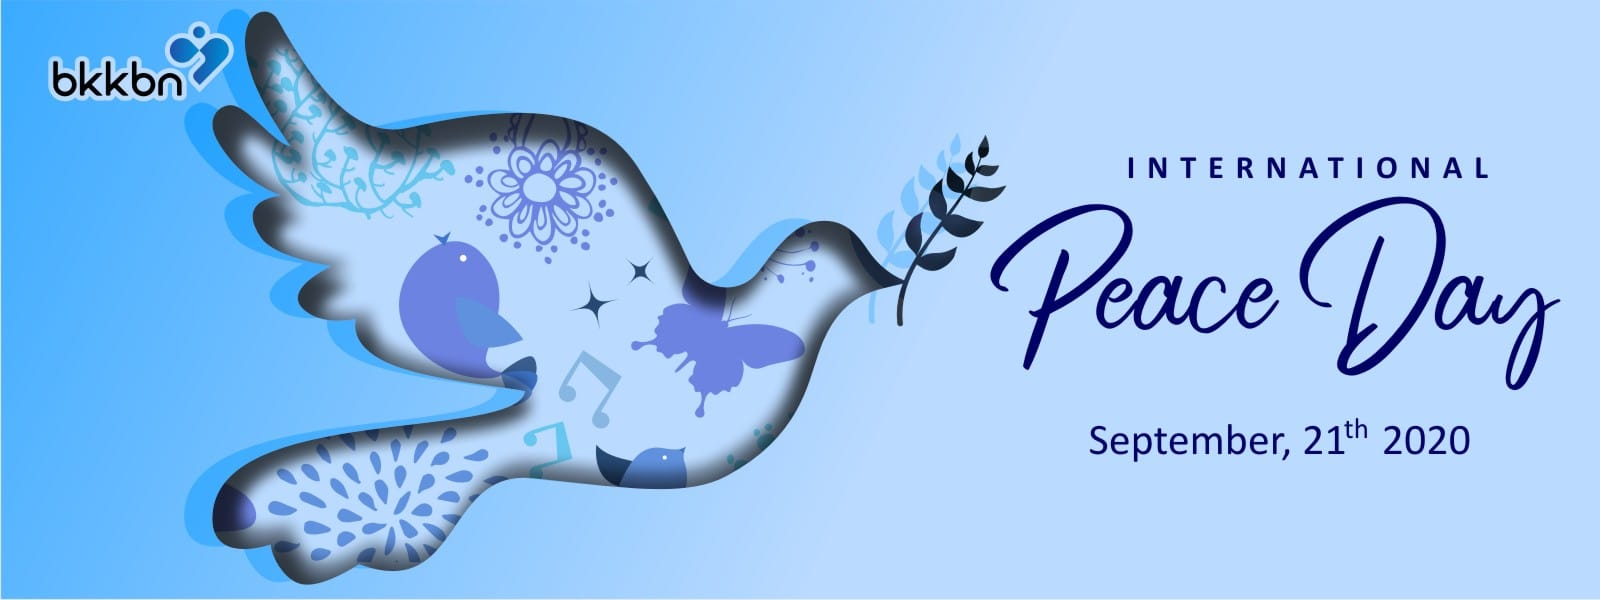 peace day banner - PC